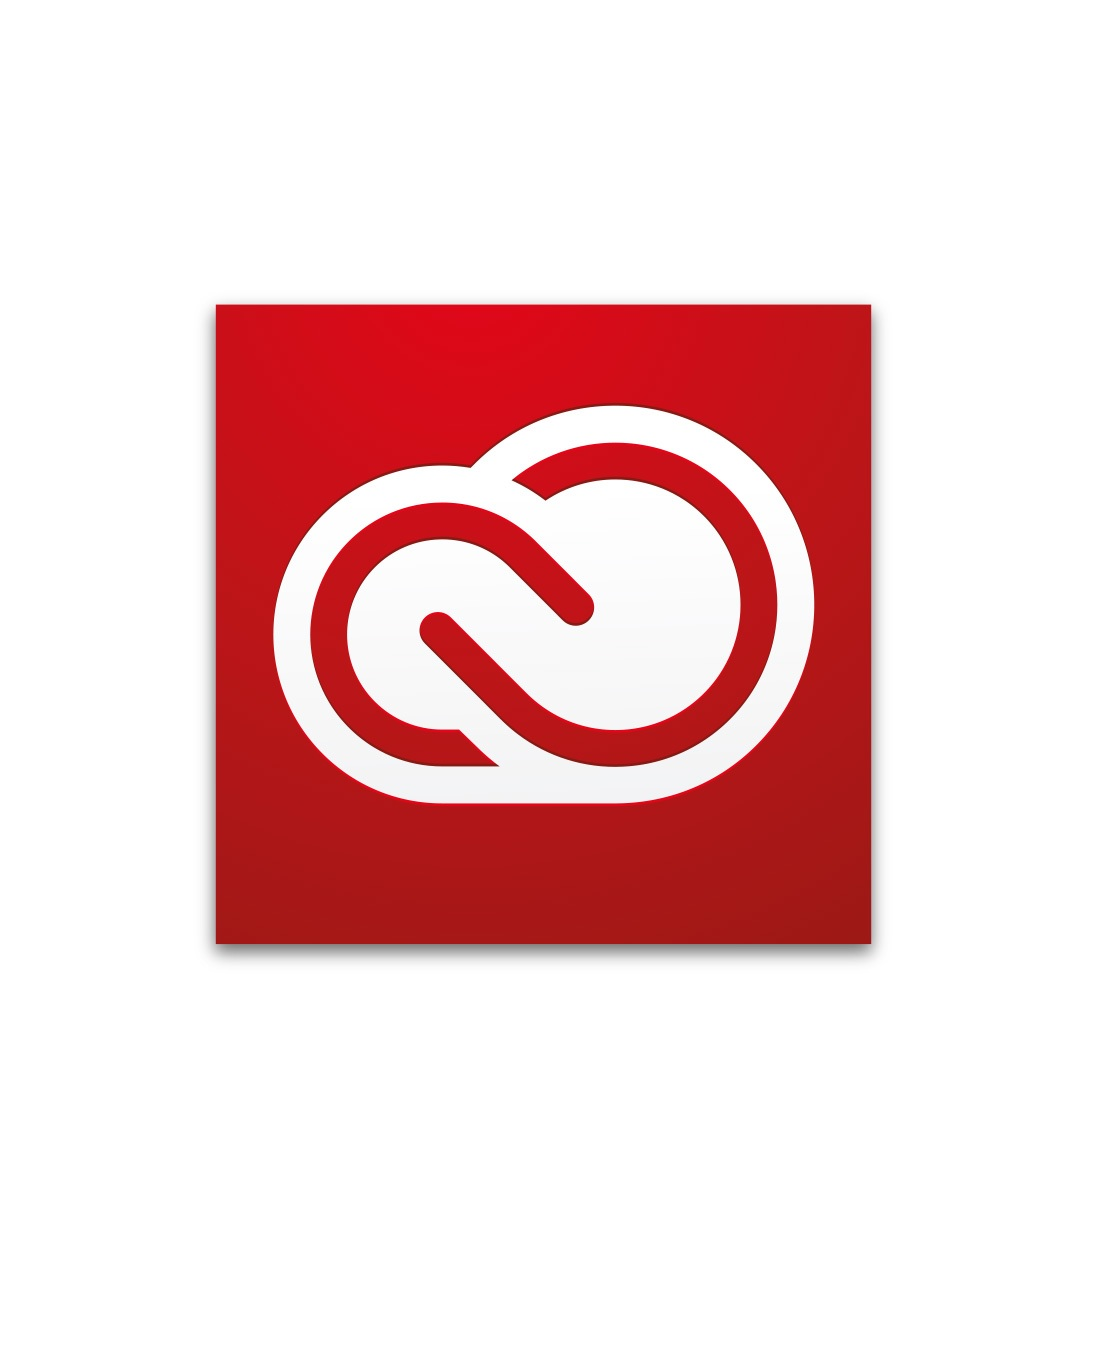 1 Jahr Subscription Renewal für Adobe Creative Cloud for Teams All Apps VIP Lizenz Download Education Win/Mac, Multilingual (1-9 Lizenzen)